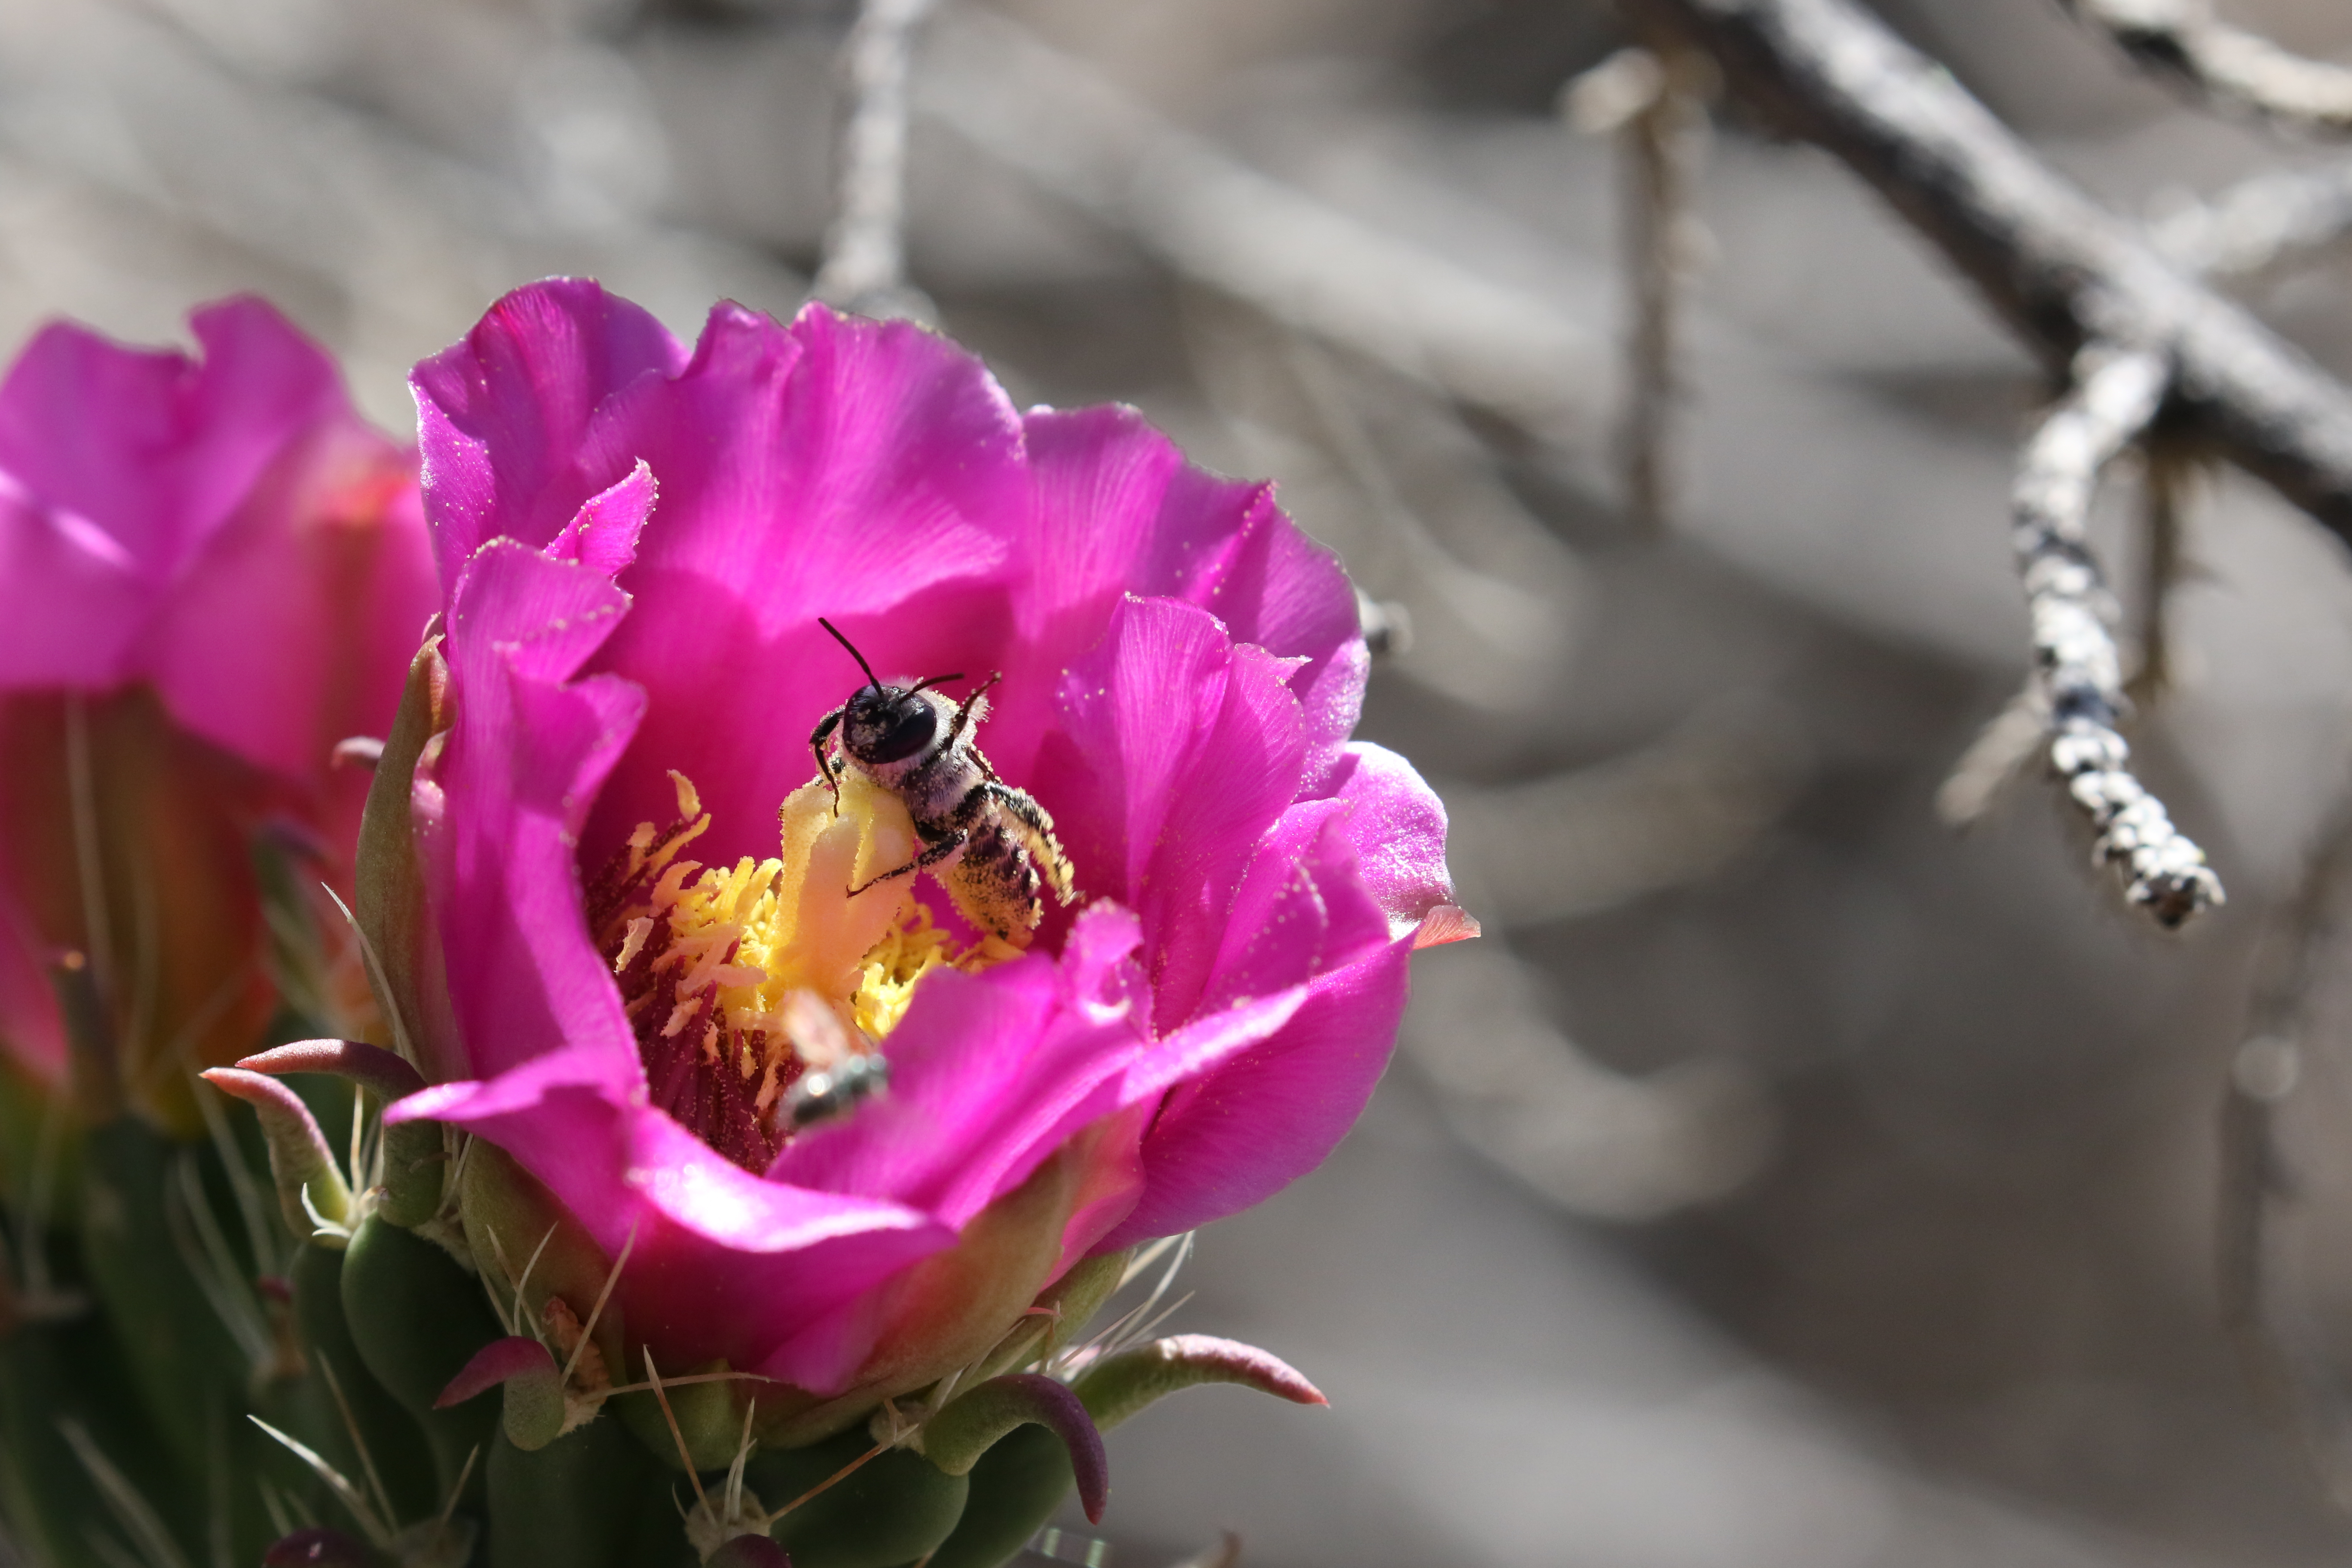 A small bee peers out of the center of a large, pink cactus flower, which is somewhat shaped like a cup.